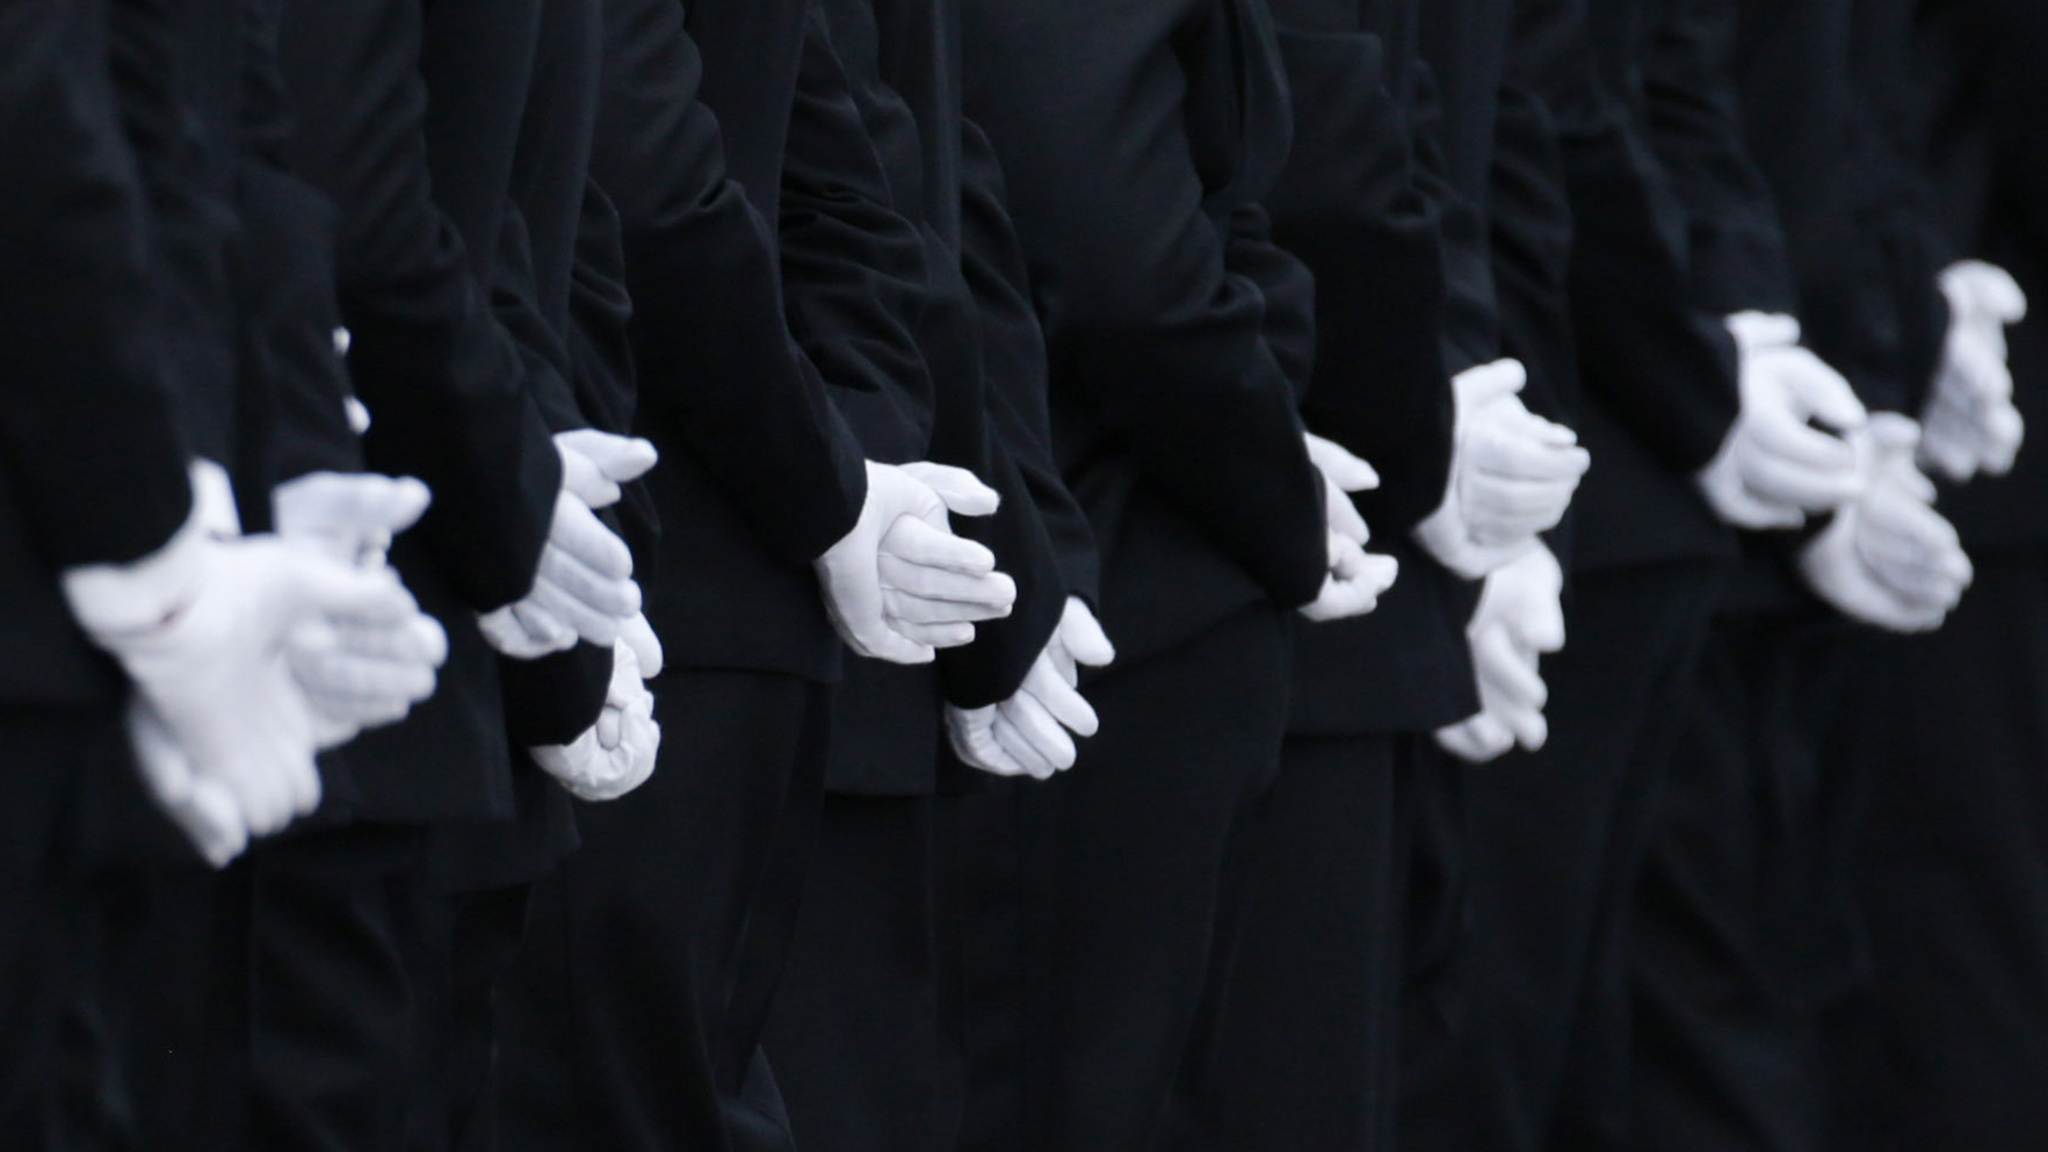 The gloved hands of new recruits taking part in the Metropolitan Police Service's first passing-out parade on the redeveloped grounds at the Peel Centre in Hendon, north London. PRESS ASSOCIATION Photo. Picture date: Friday September 9, 2016. Photo credit should read: Yui Mok/PA Wire